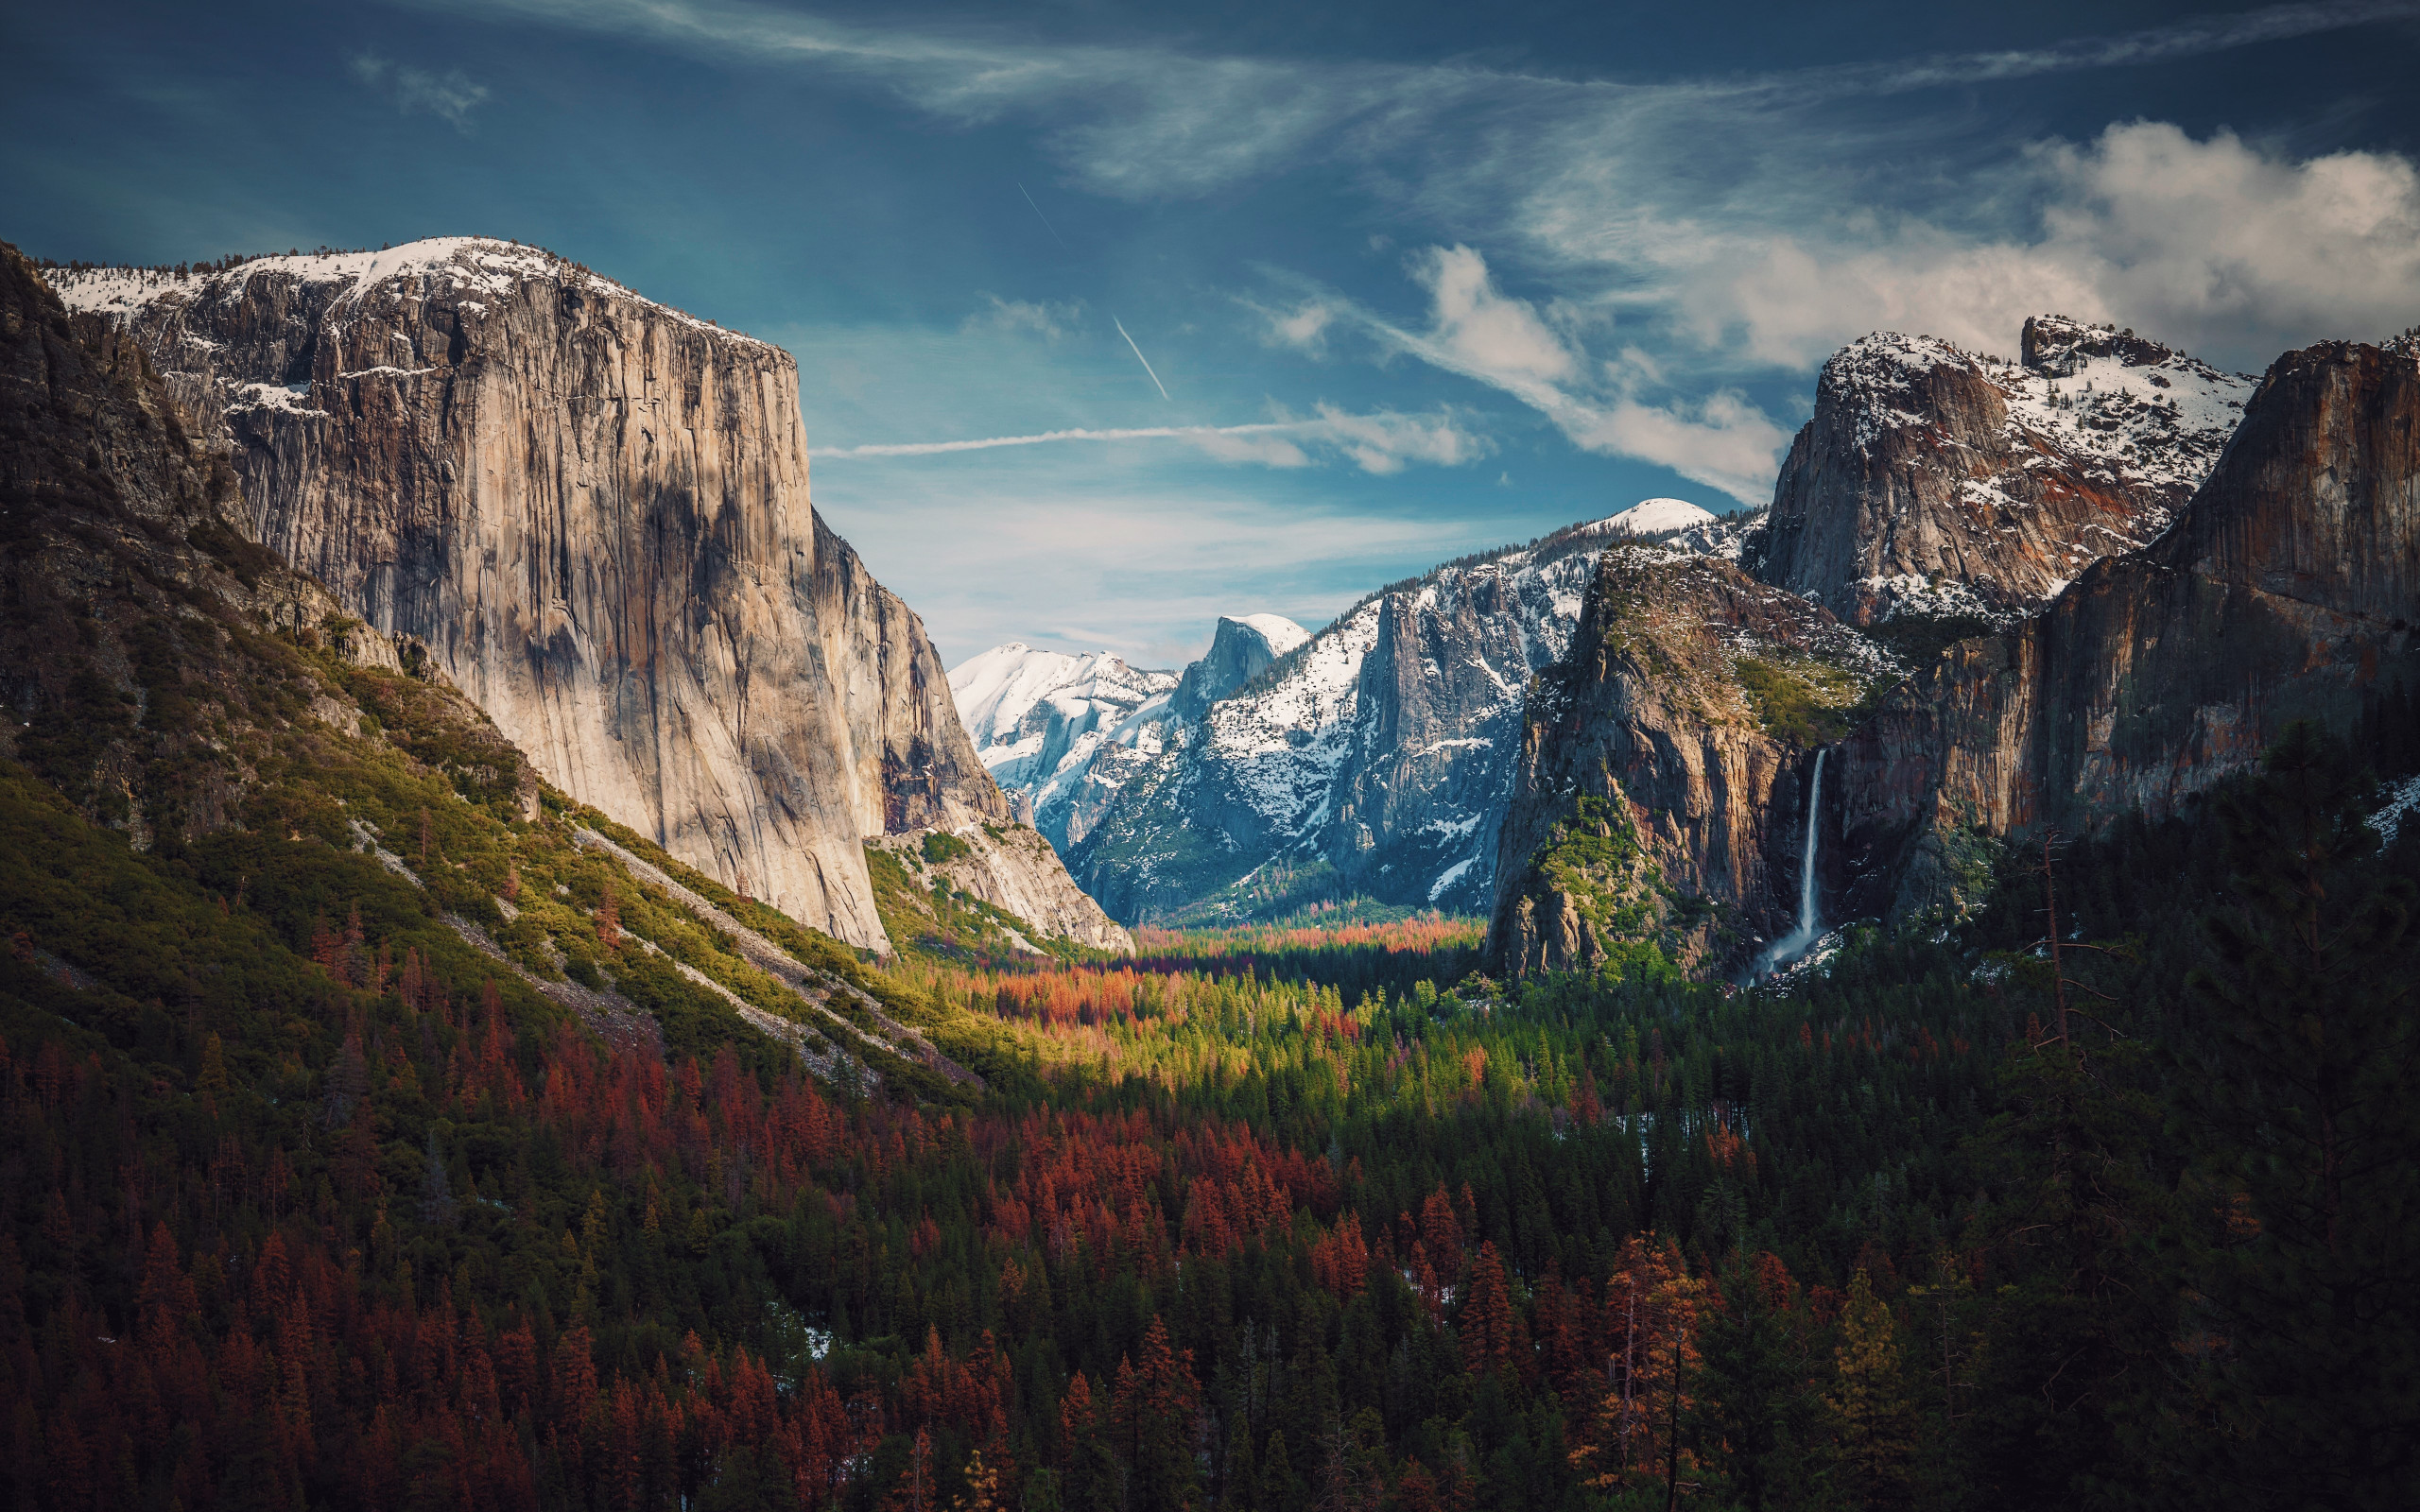 Best View from Yosemite wallpaper 2560x1600